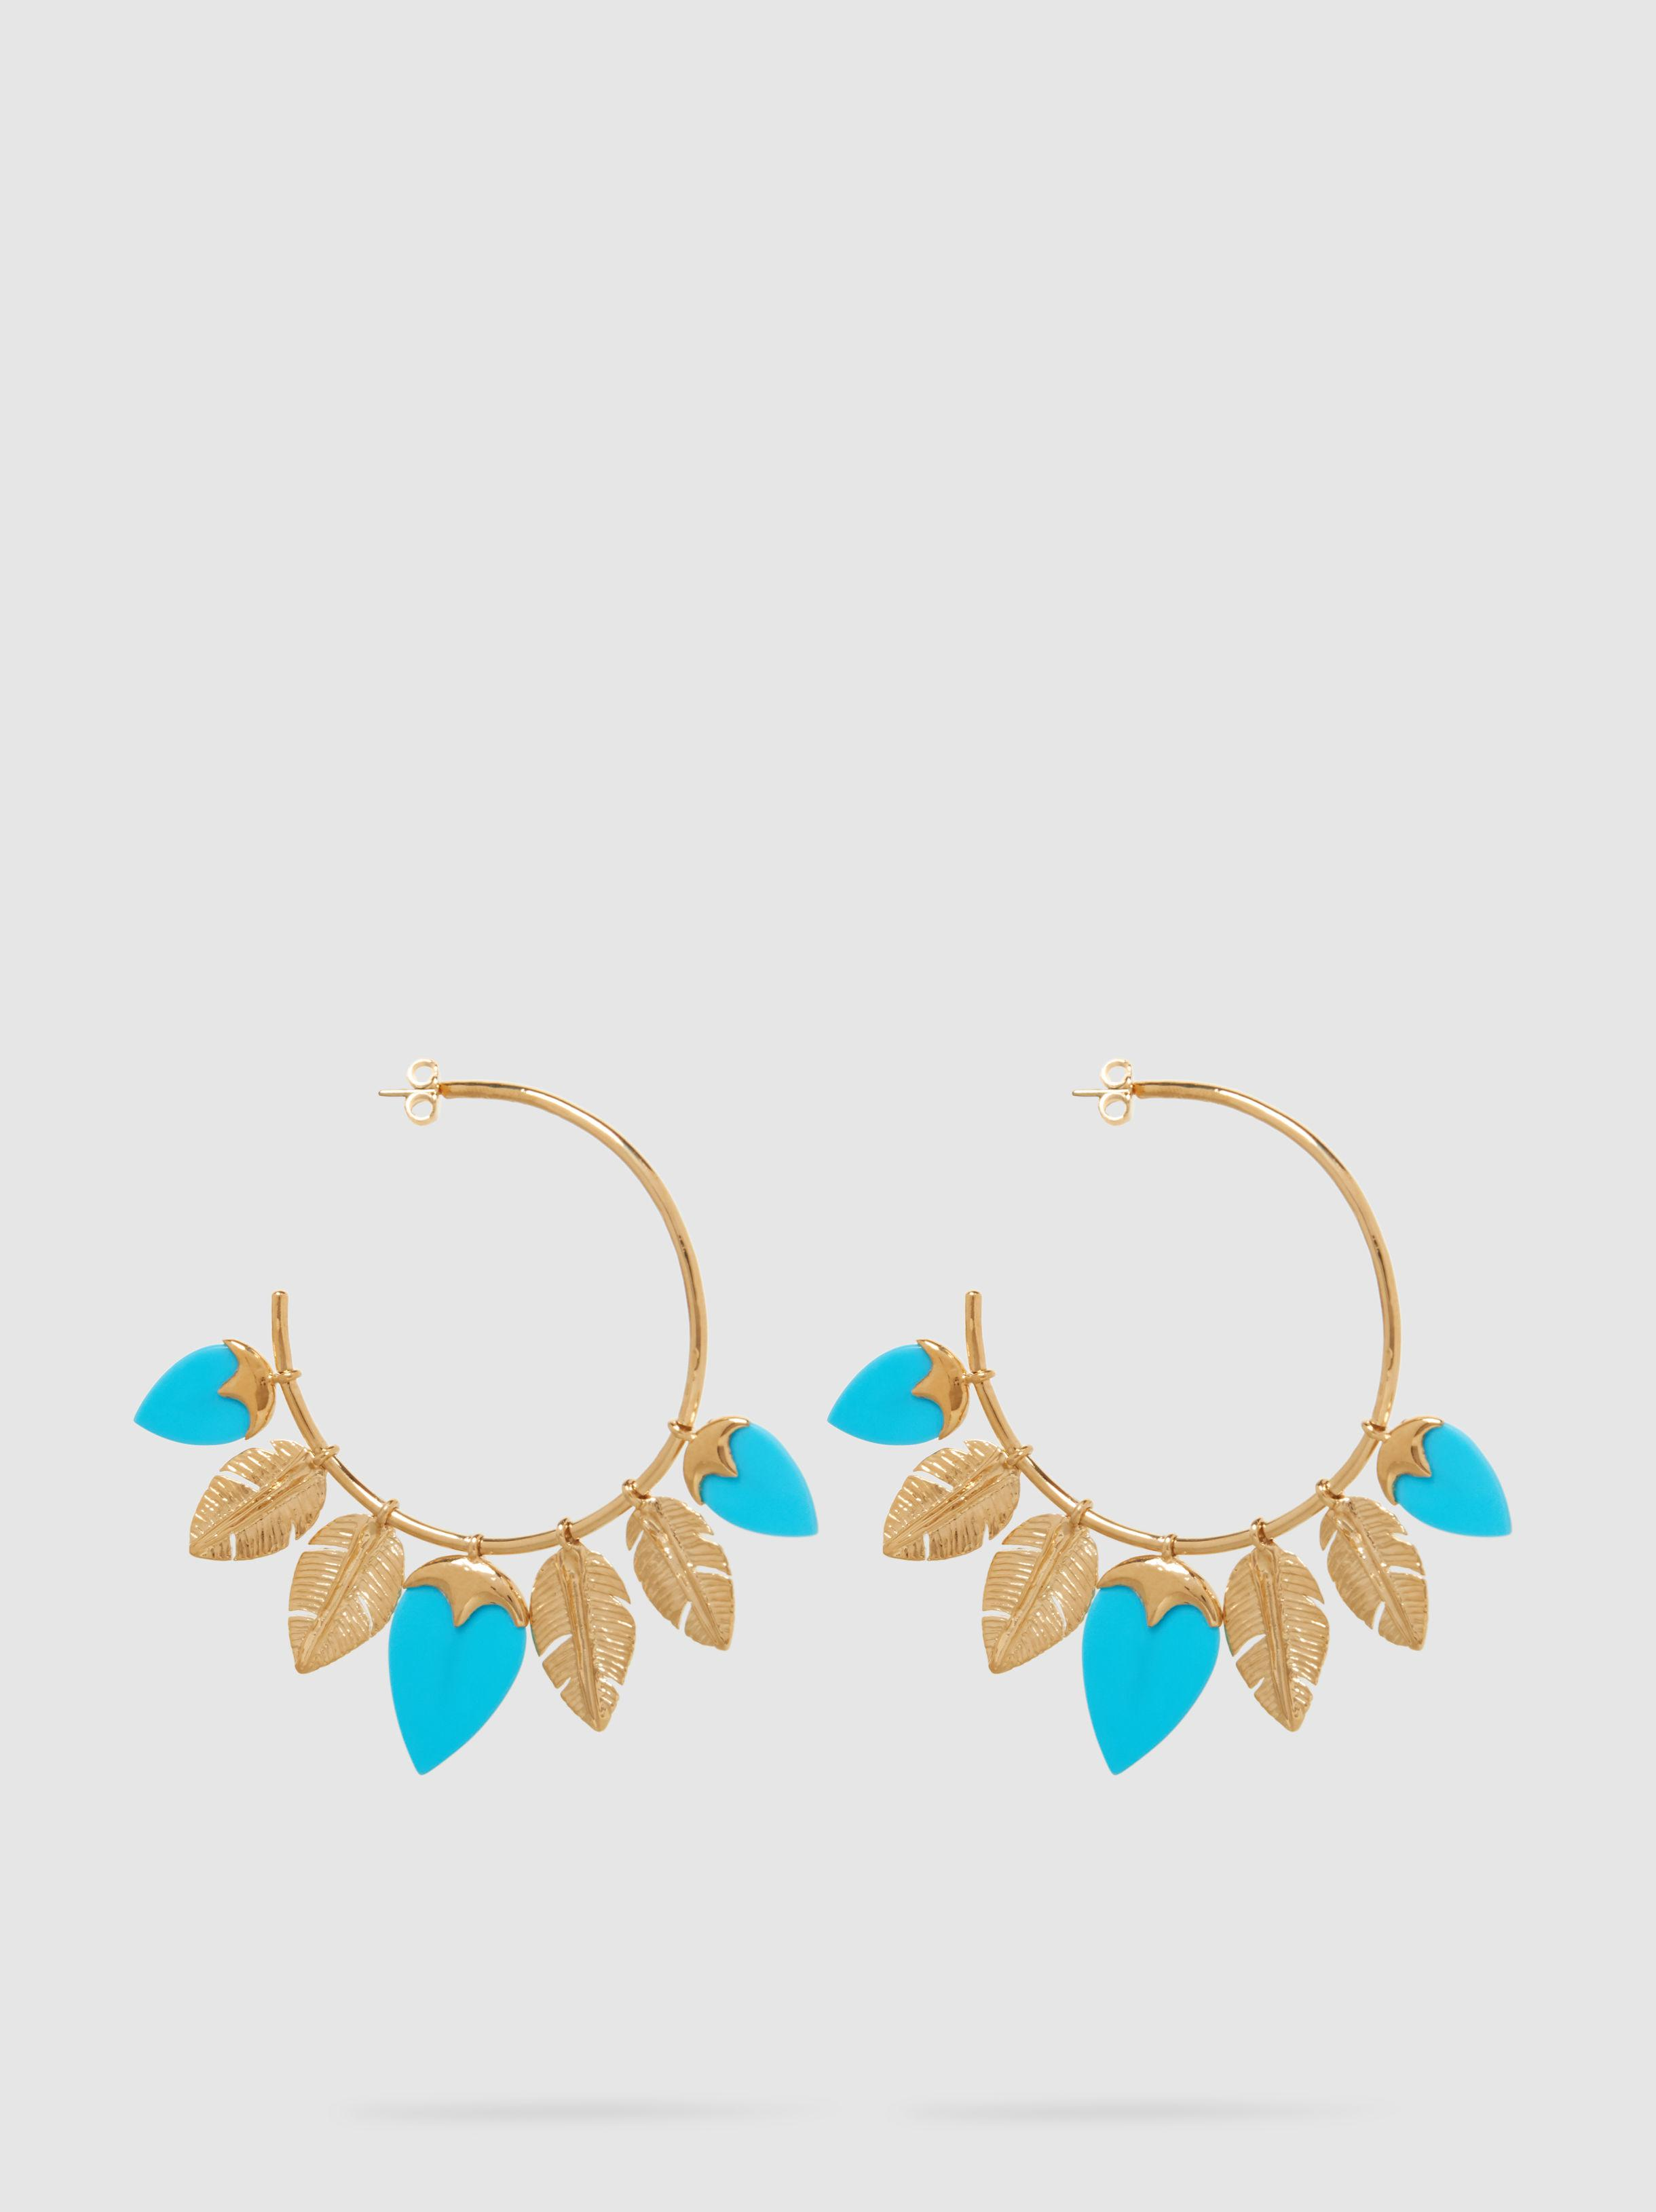 Talitha Gold-plated Turquoise Hoop Earrings - one size Aur zIzk9C